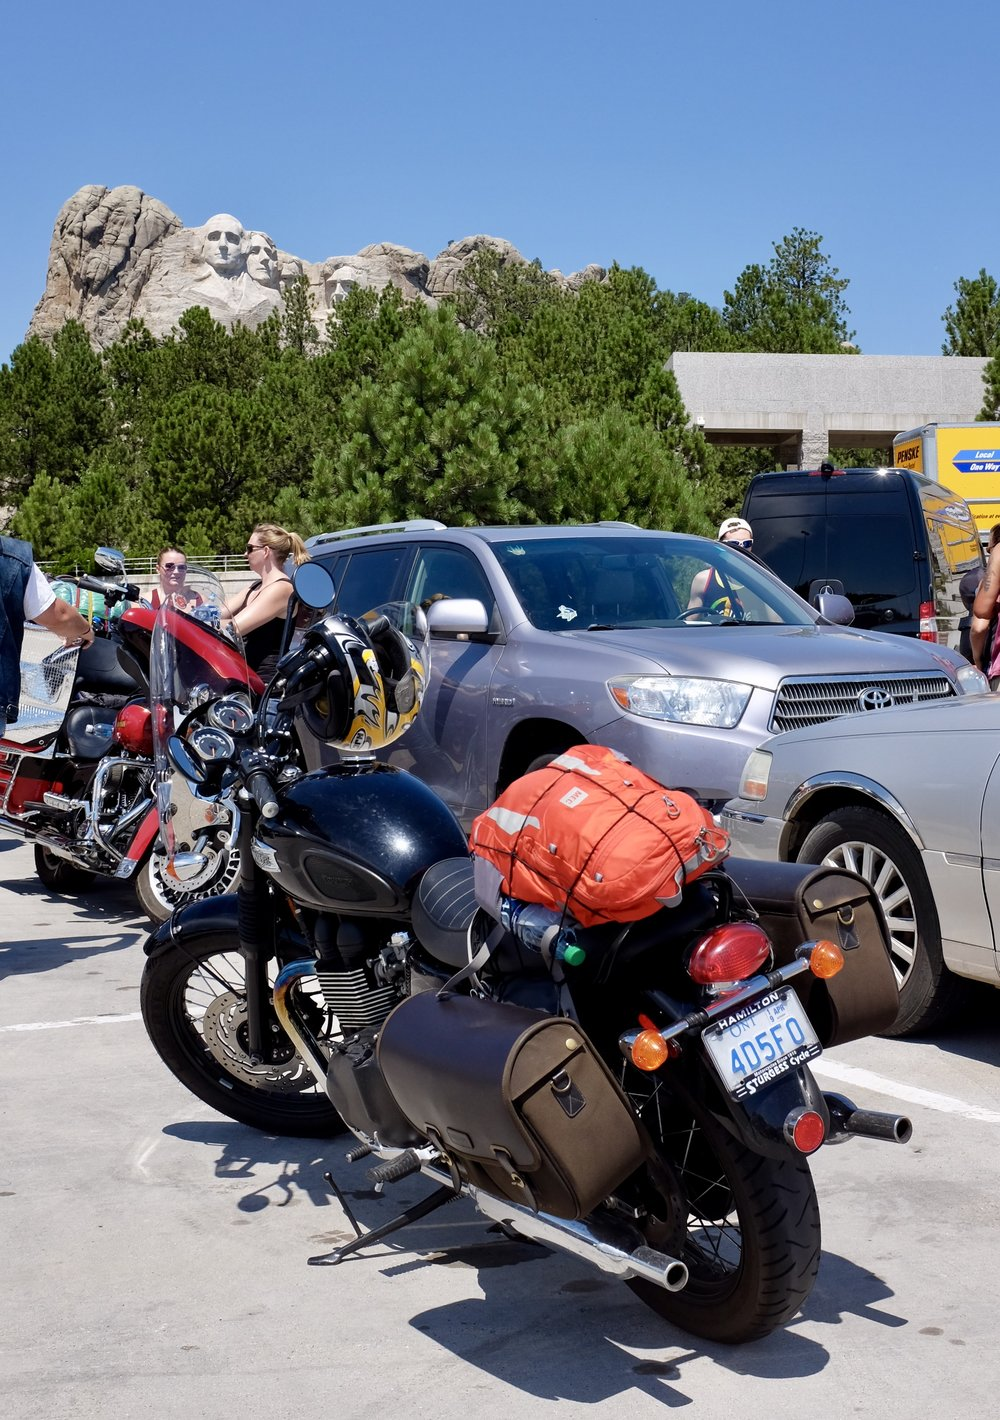 Parking lot - Motorcycles get preferred parking